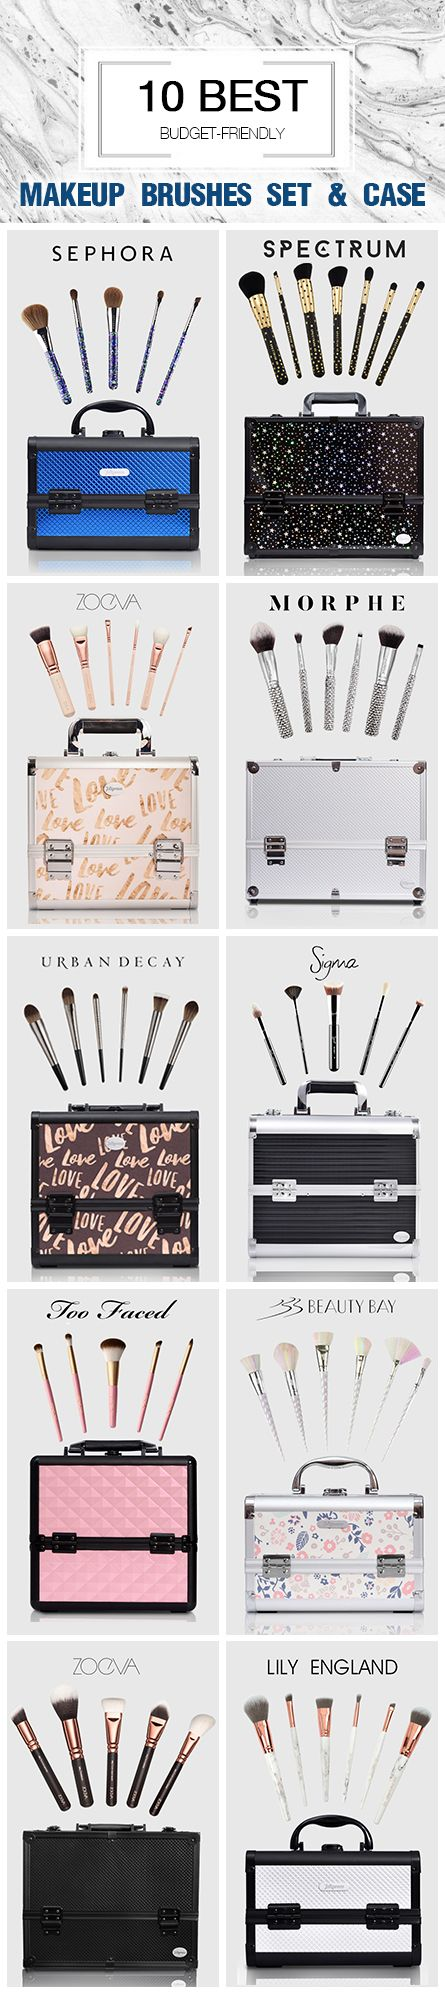 10 Best Budget-friendly Makeup Brushes Sets & Cases 2018 Professional Sigma brush set, Too Faced brush set, Zoeva brush set, Real Technique brush set, Beauty Bay brush set, Sephora brush set, Morphe brush set, Urban Decay brush set. Lily England